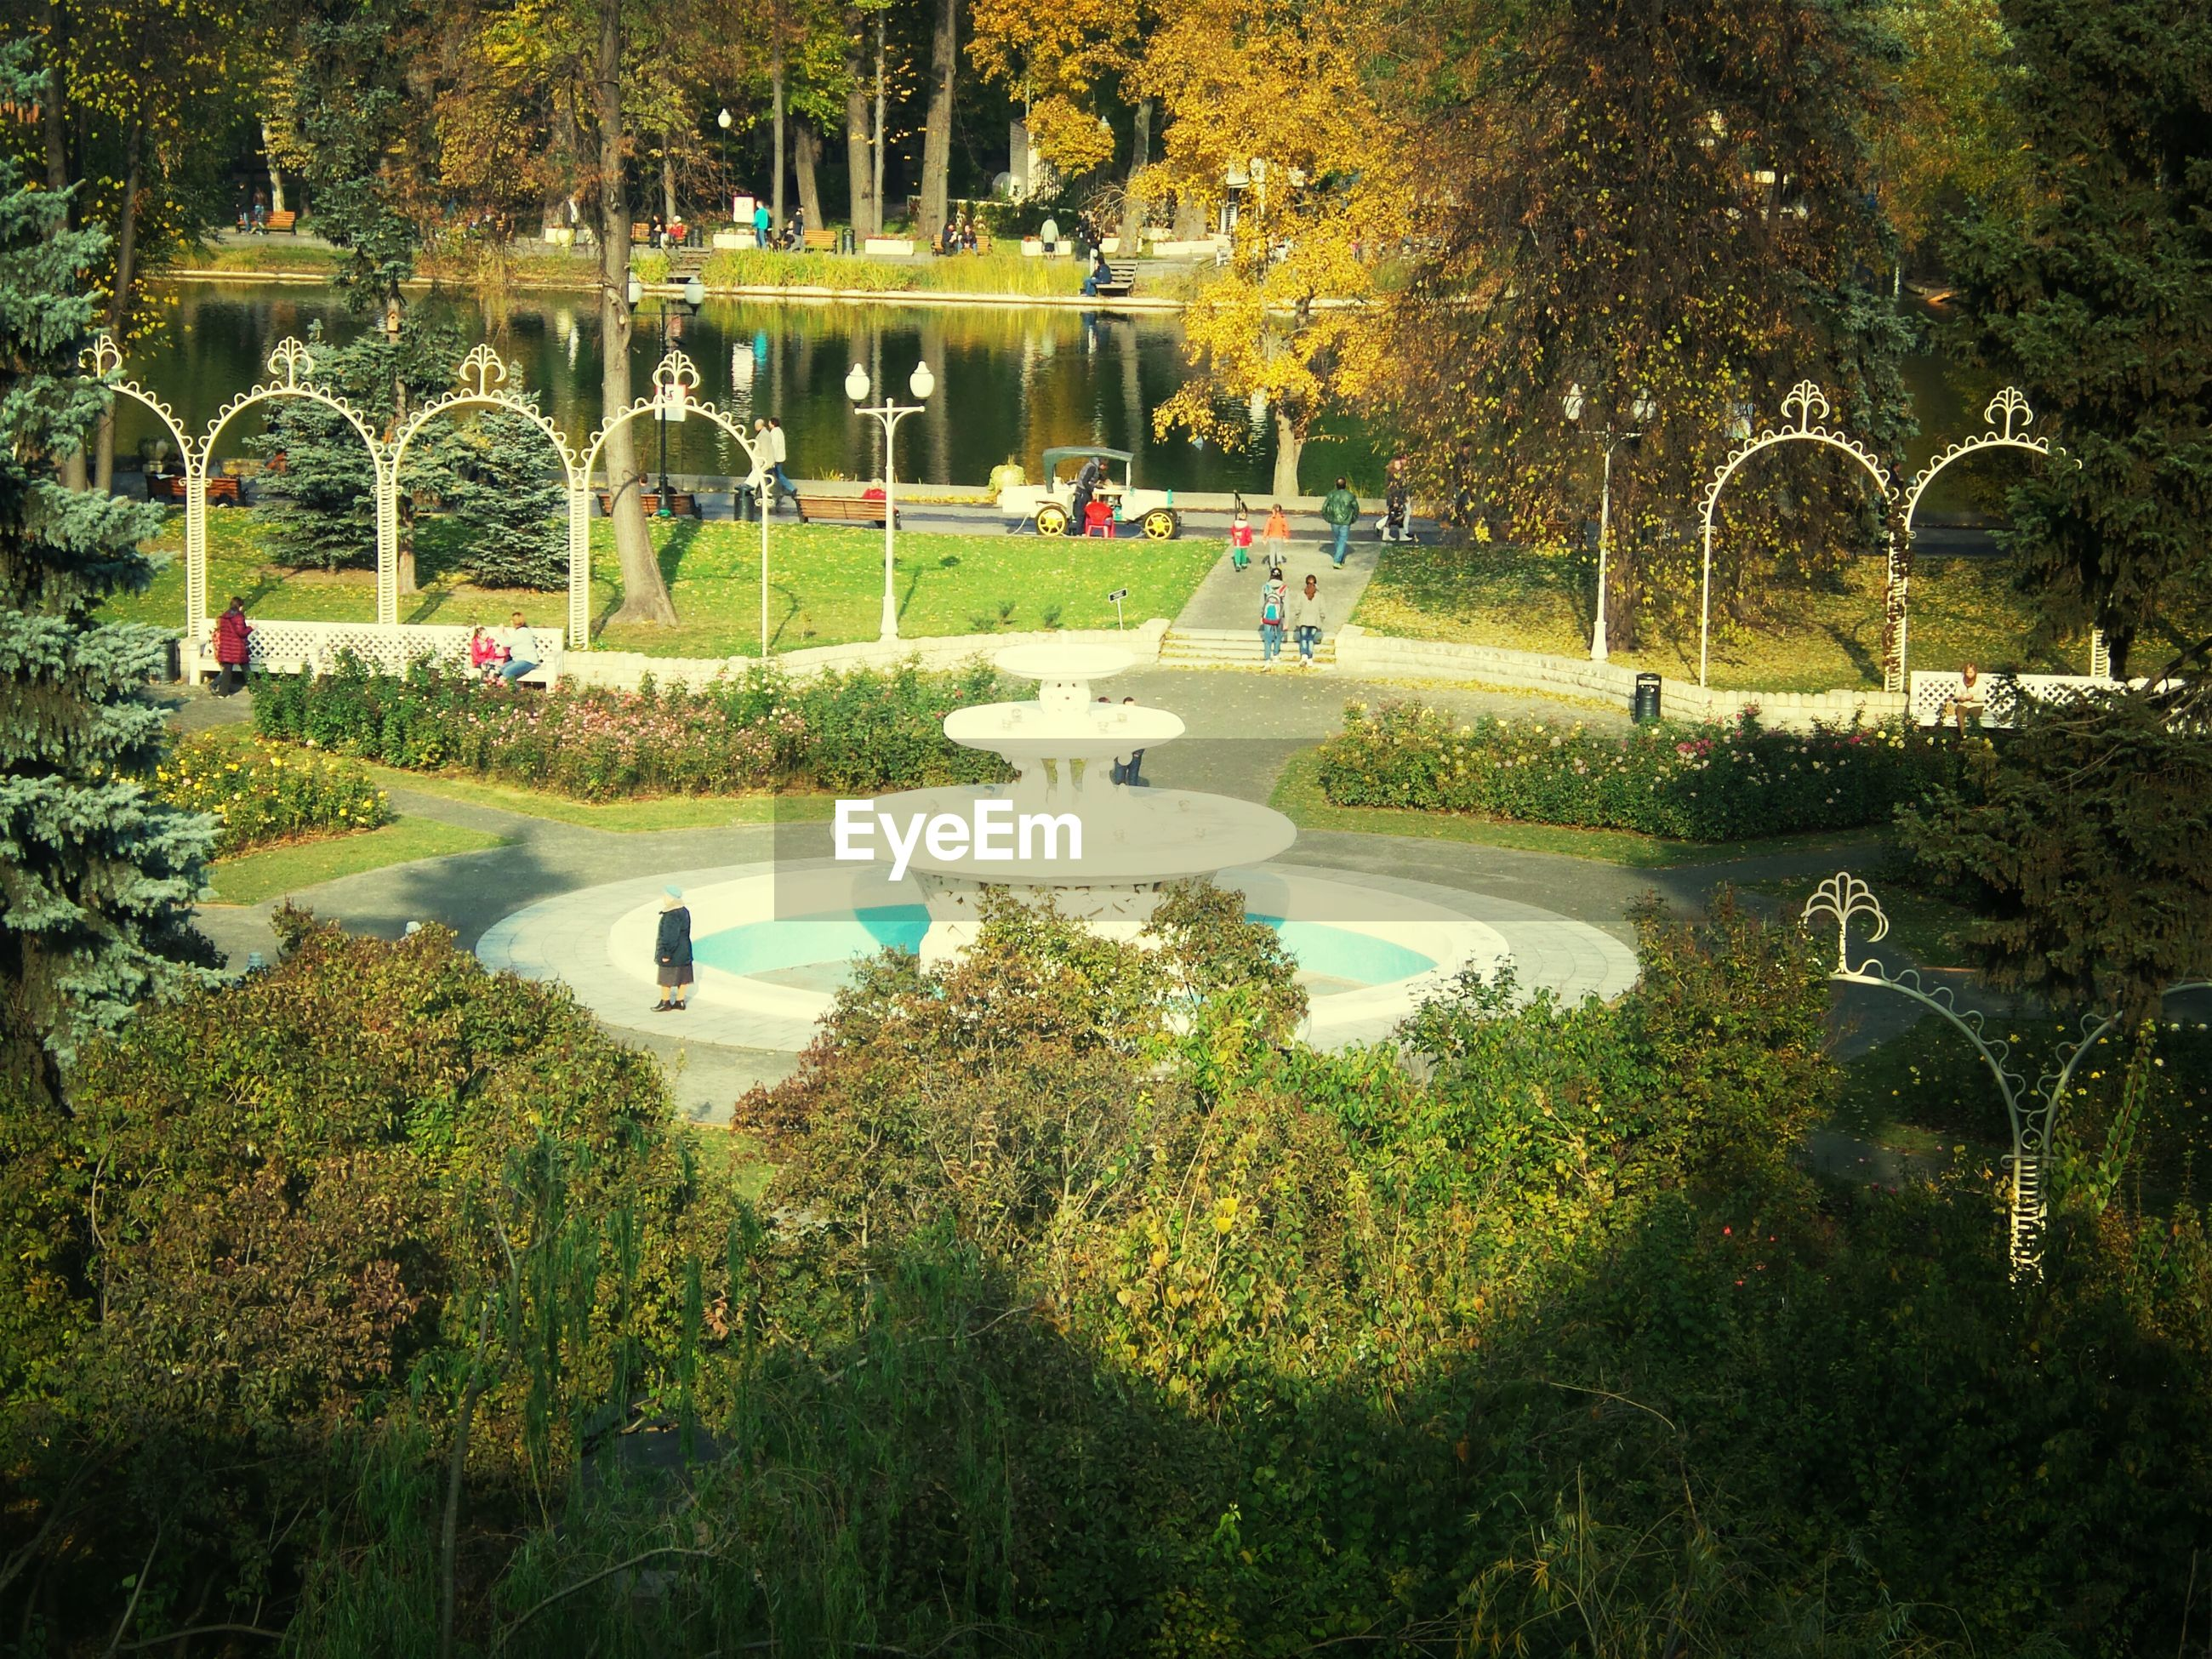 tree, park - man made space, growth, plant, park, built structure, green color, building exterior, formal garden, architecture, grass, lawn, incidental people, nature, sunlight, footpath, bench, outdoors, street light, tranquility